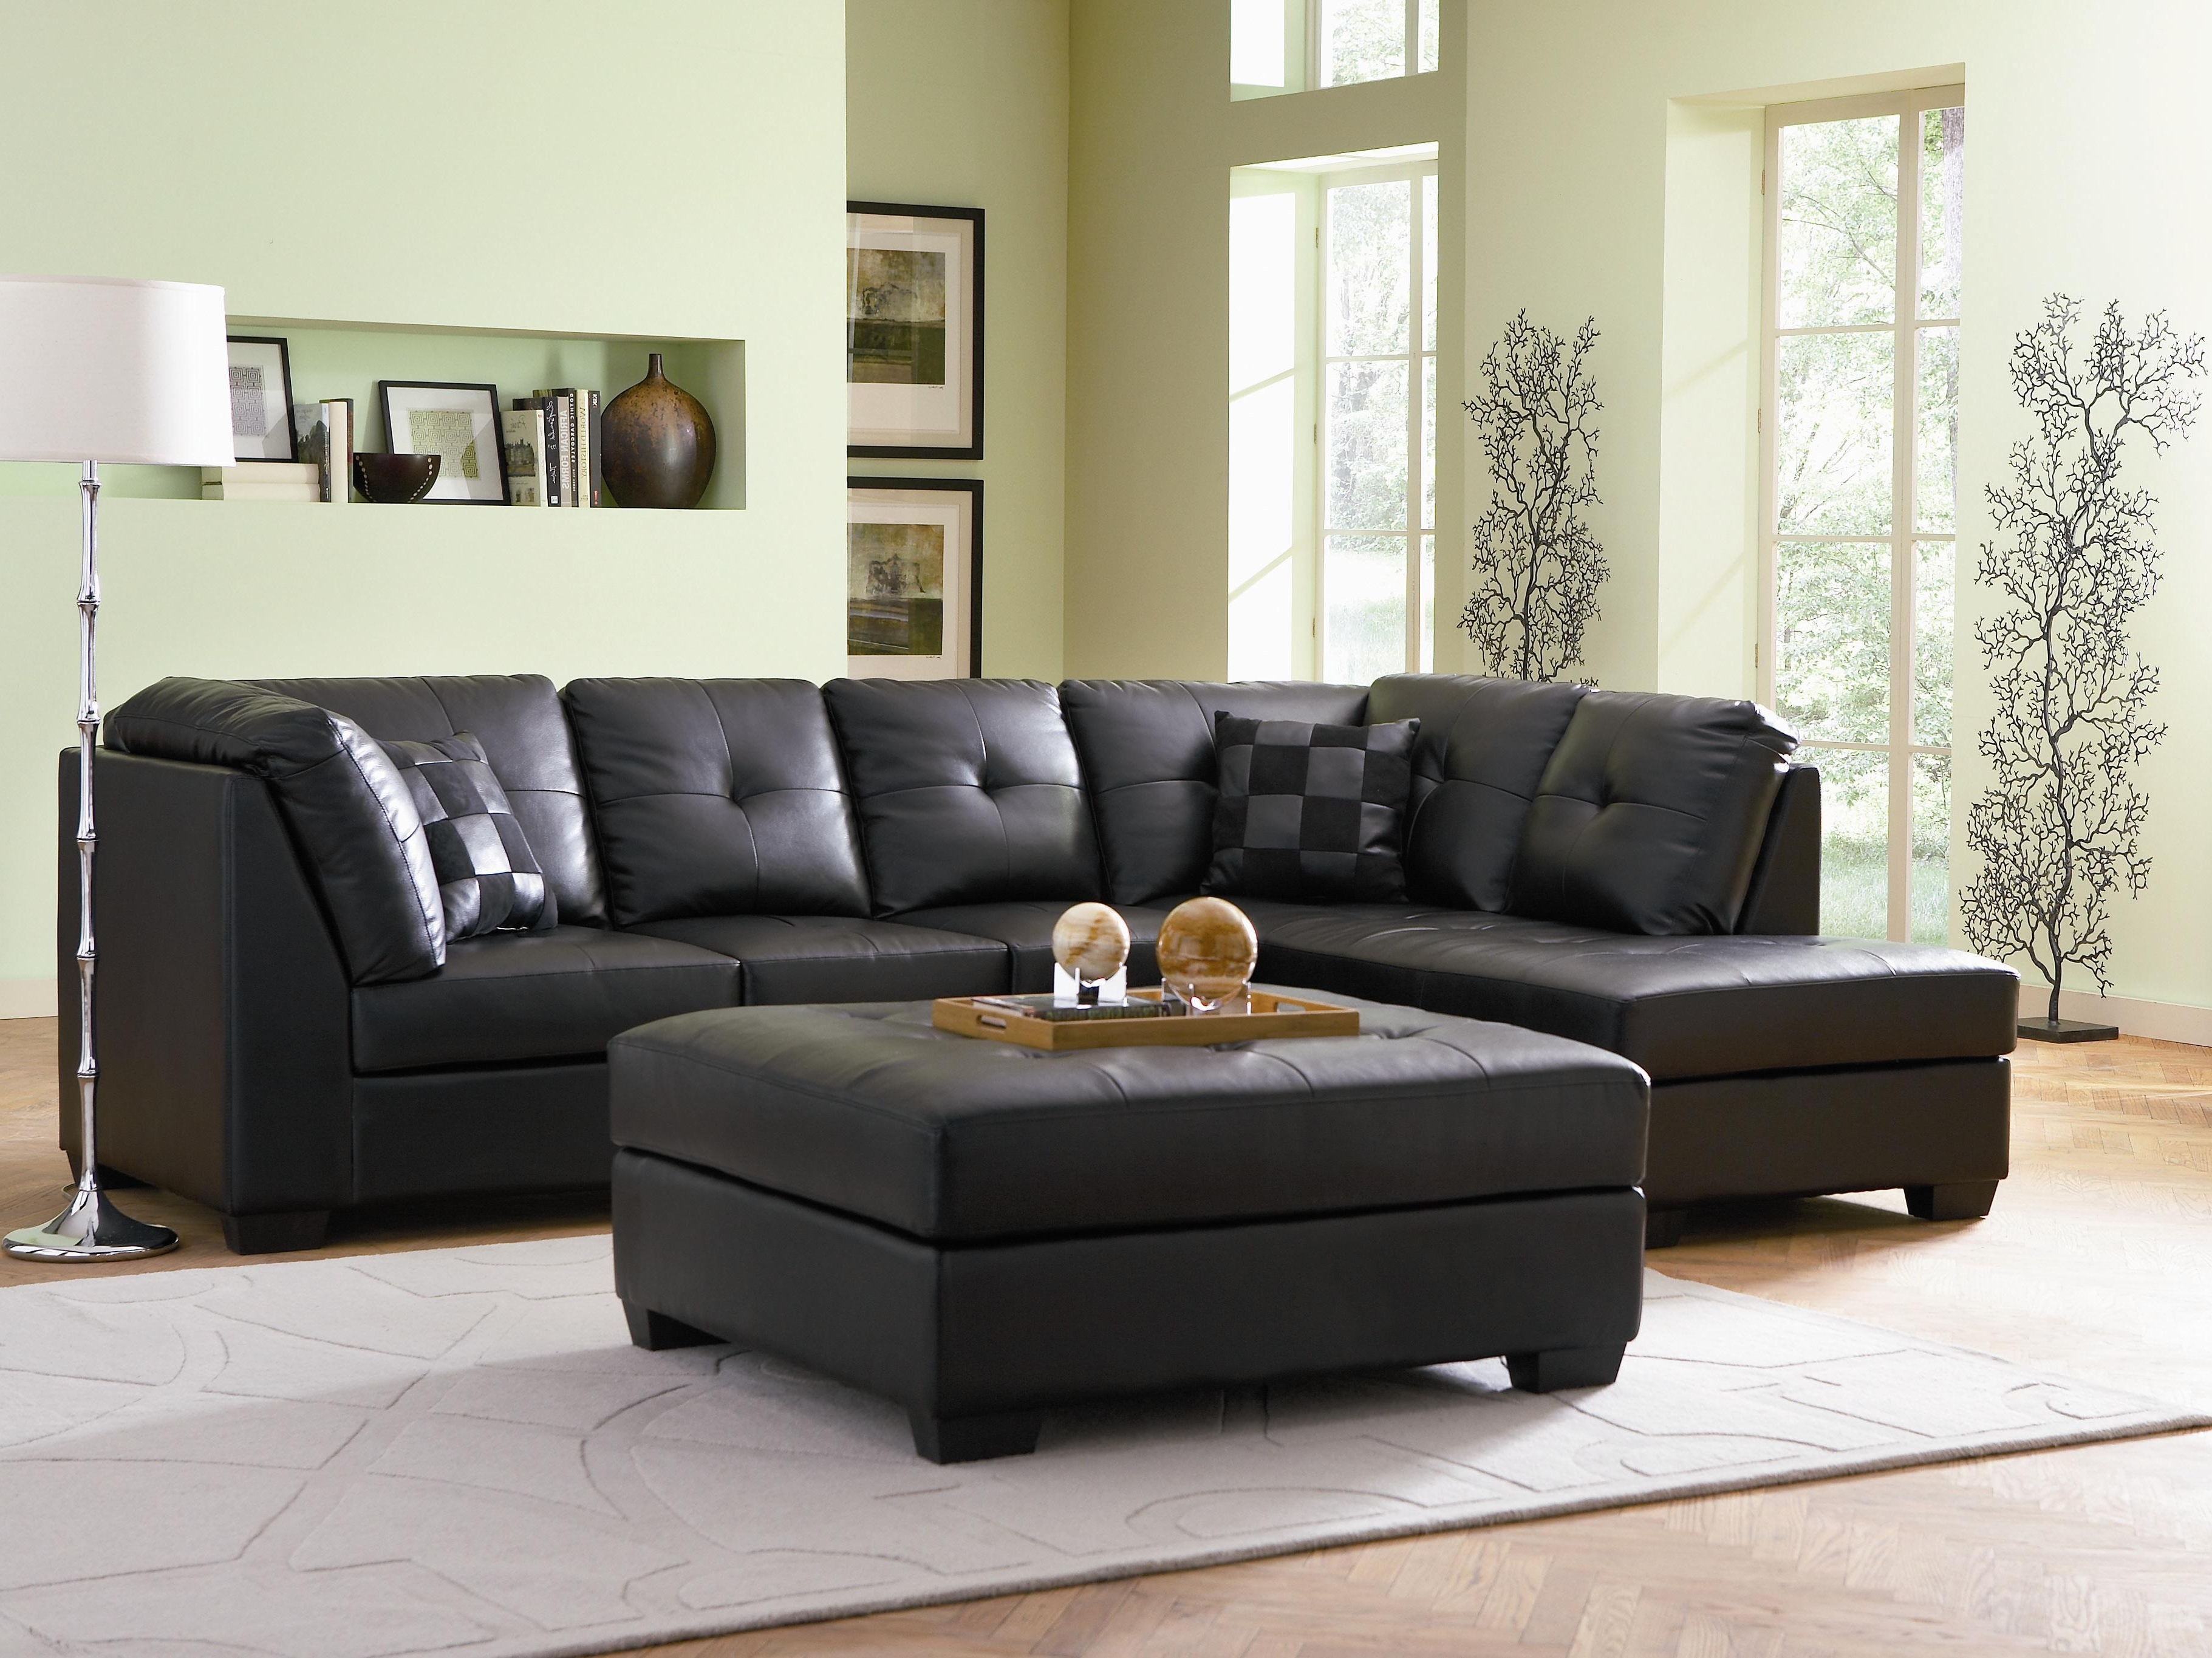 Darie Contemporary Style Black Bonded Leather Sofa Sectional W Regarding Most Popular Black Leather Sectionals With Ottoman (View 8 of 15)